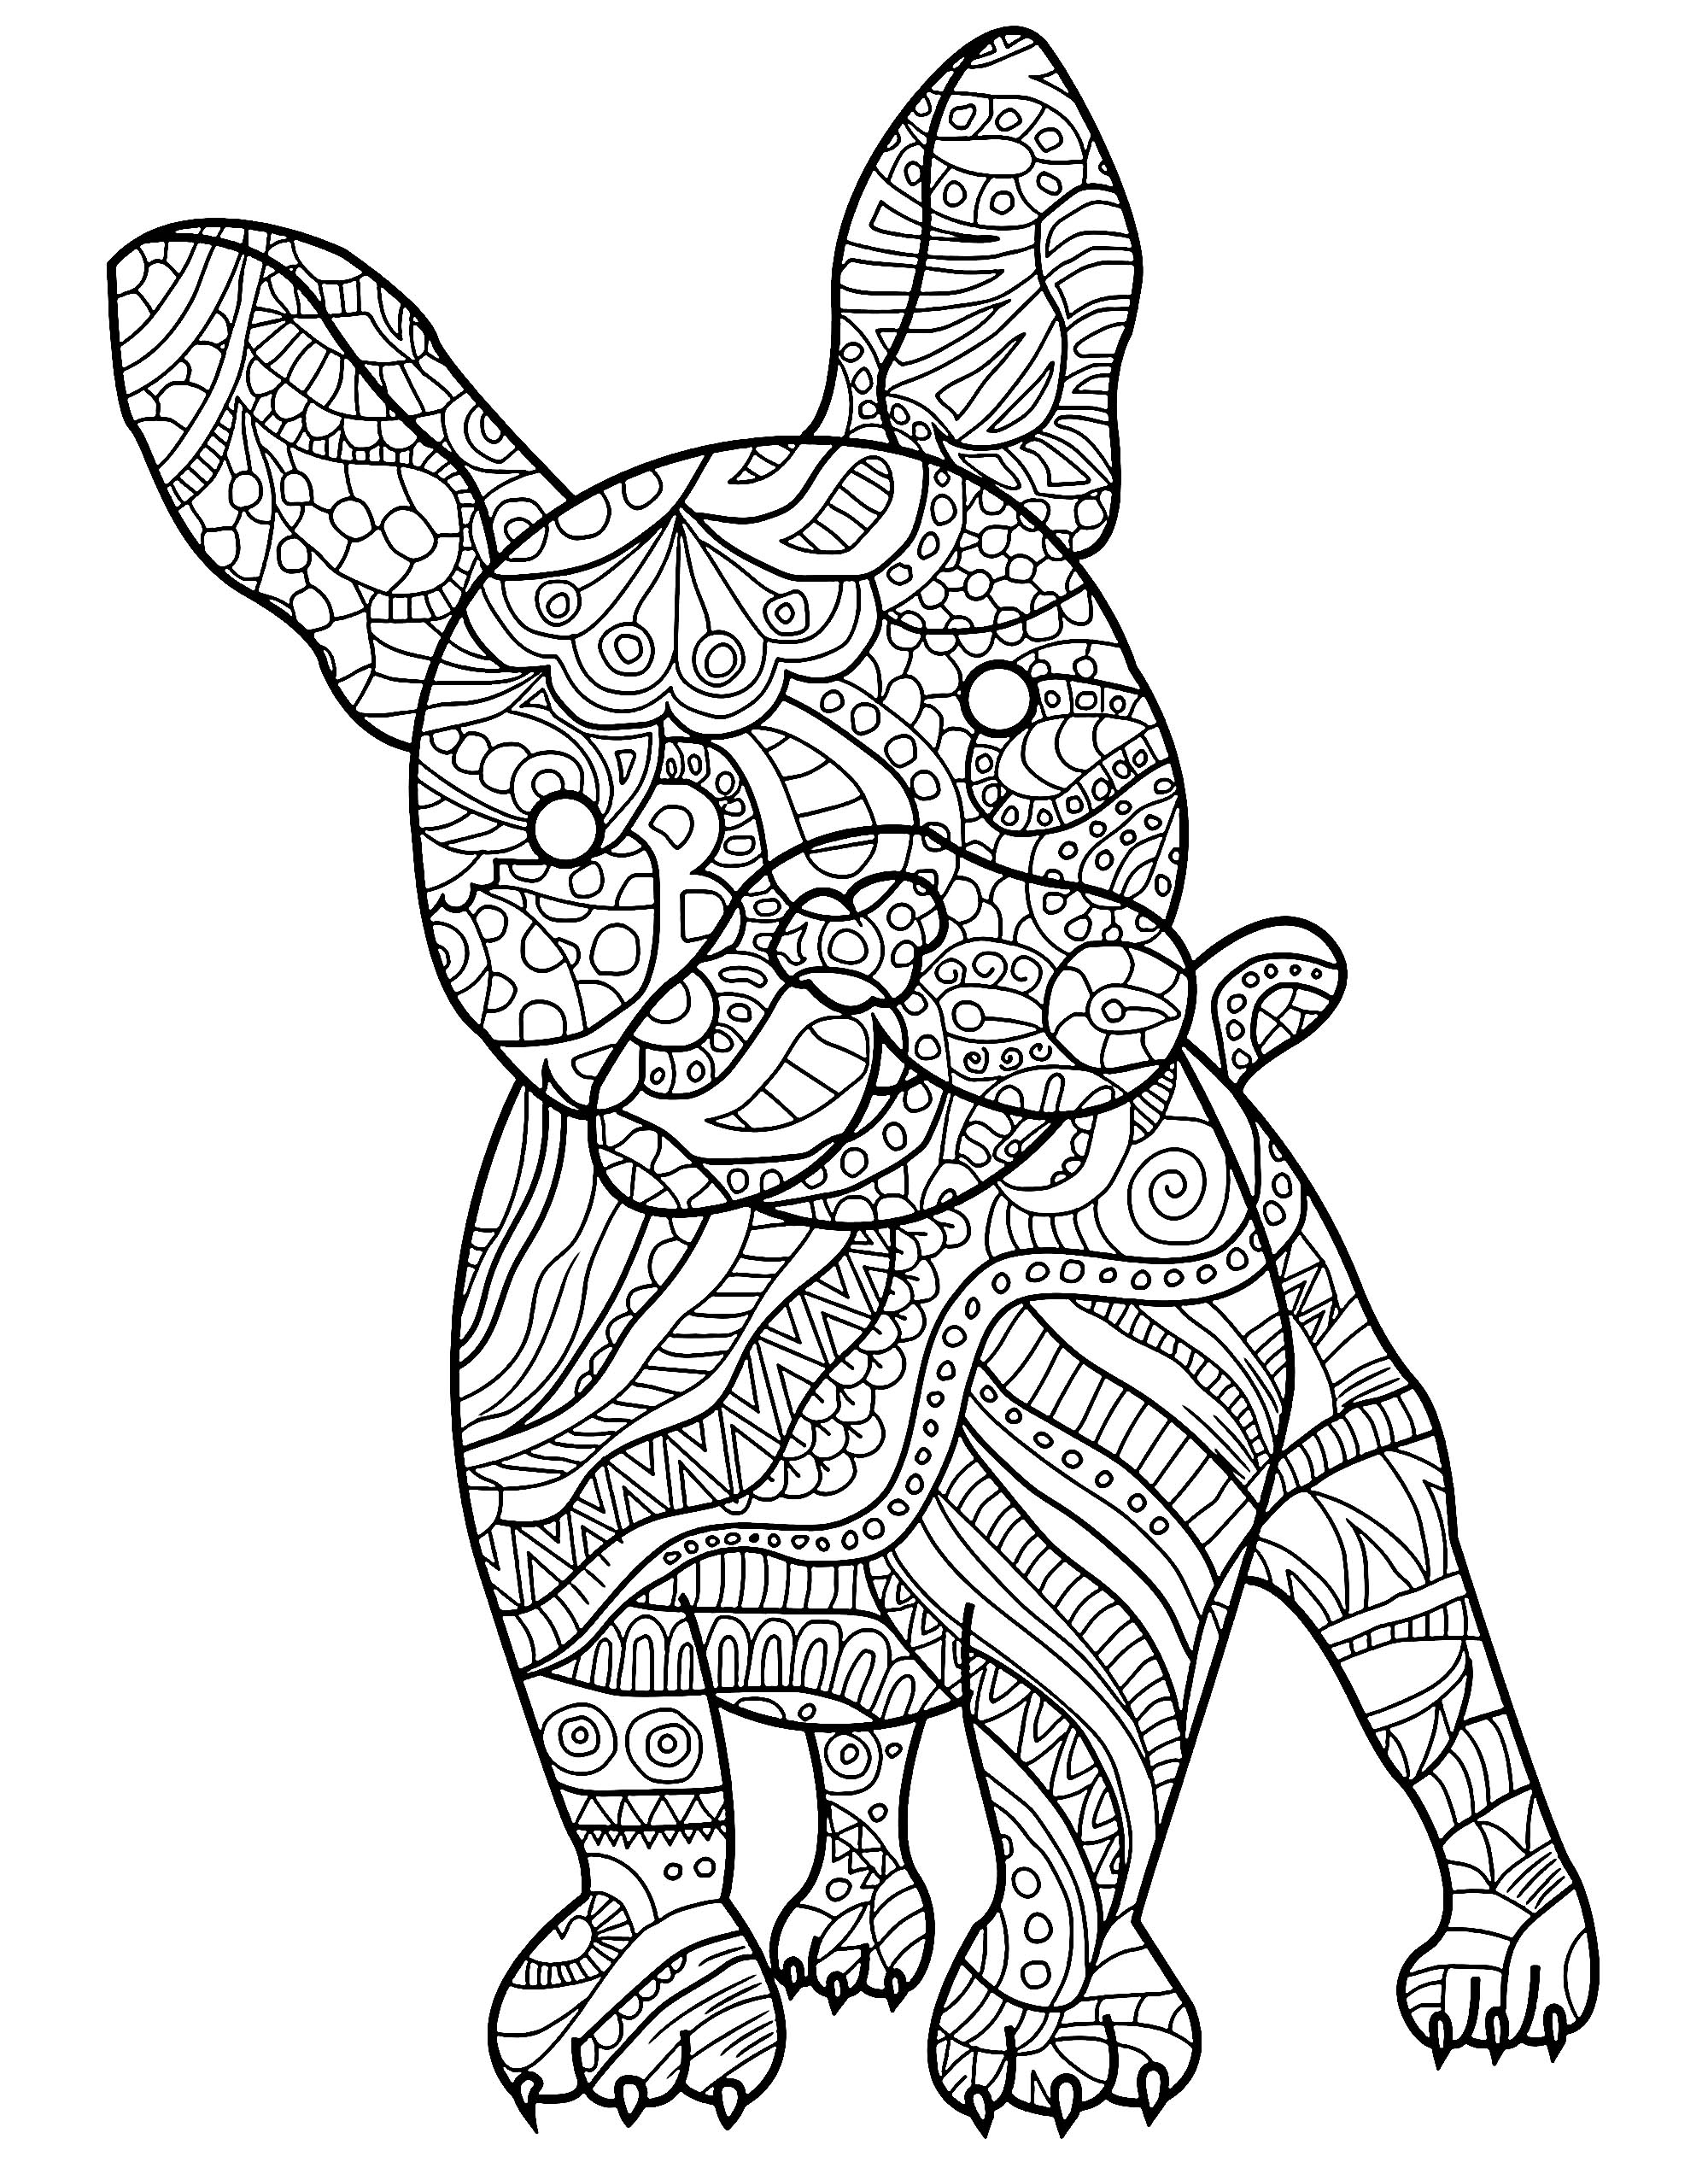 dog color pages puppy dog pals coloring pages to download and print for free pages dog color